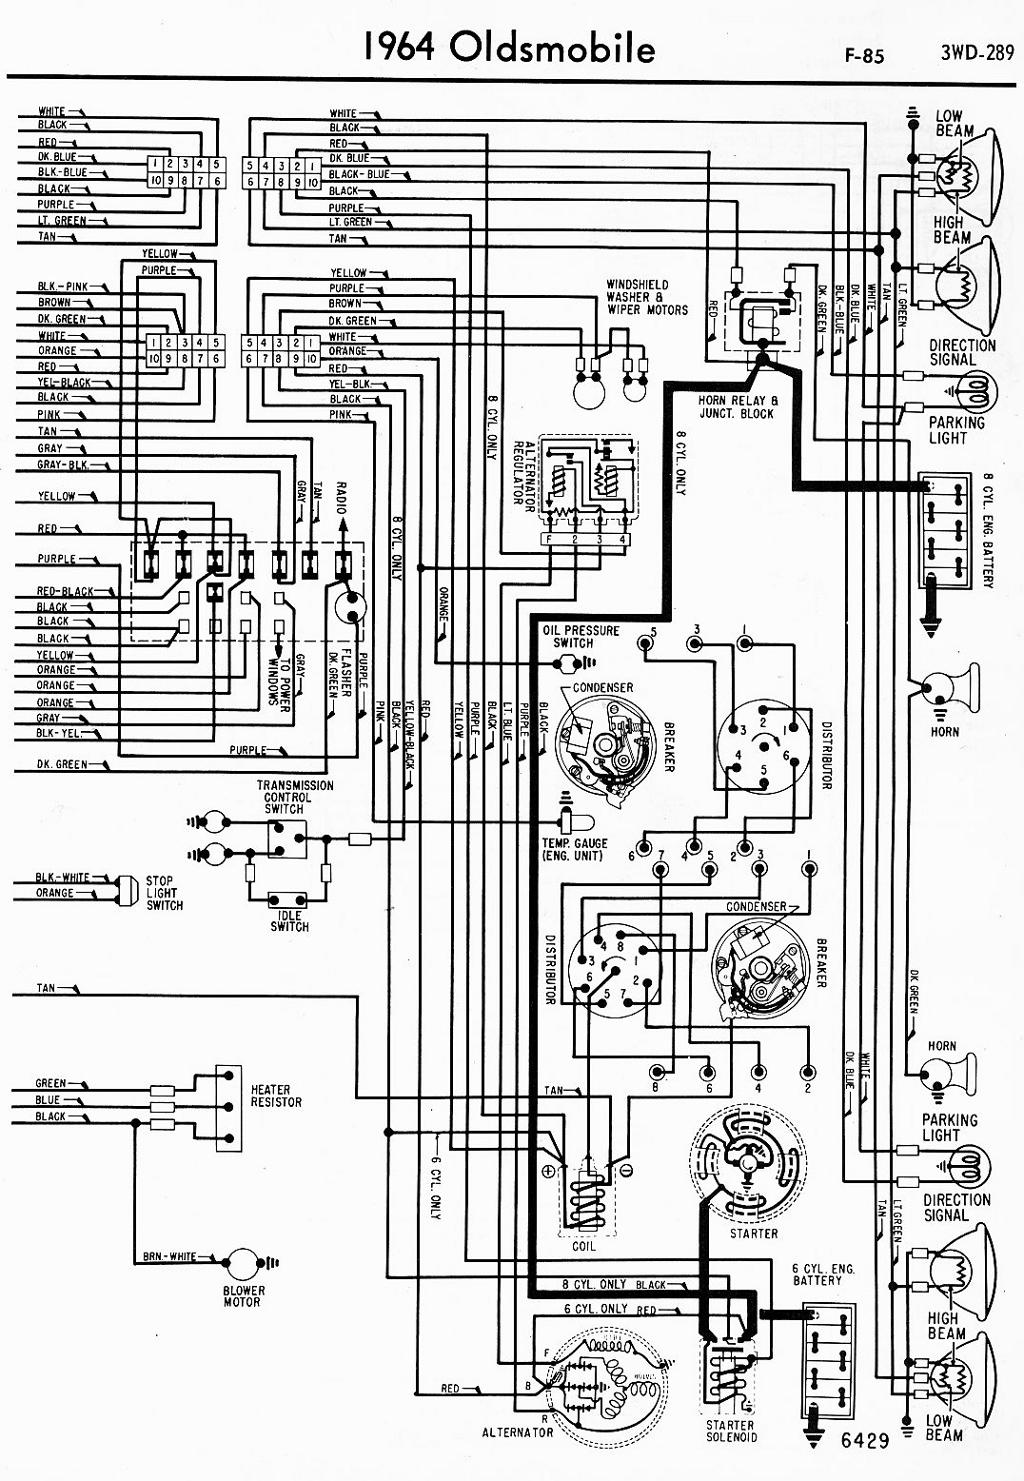 medium resolution of 1965 olds 442 wiring diagram explained wiring diagrams 1971 oldsmobile cutlass wiring diagram 1967 oldsmobile